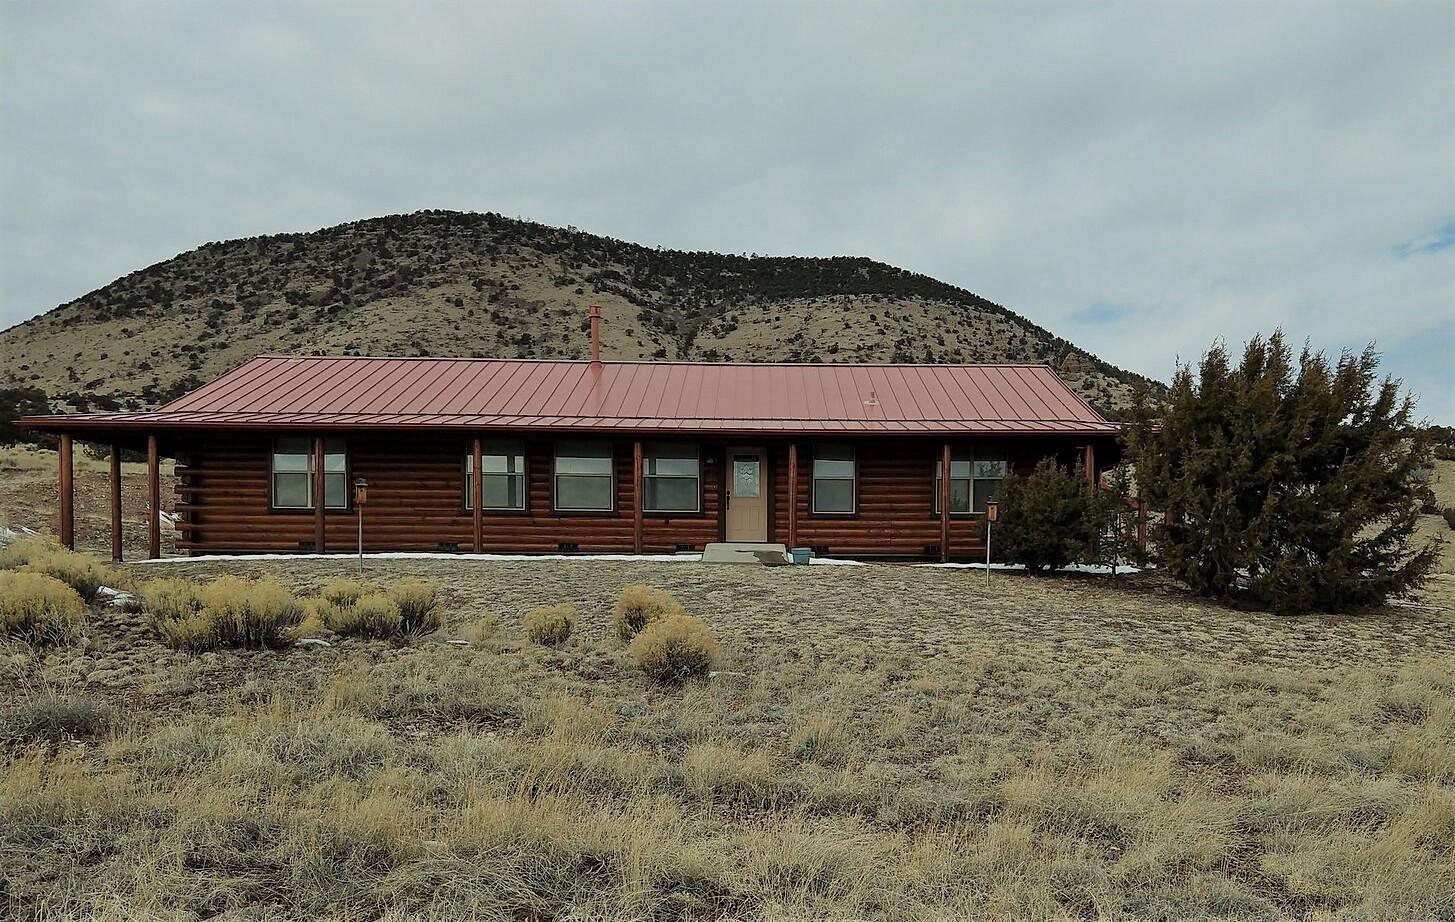 53 HILLSIDE Circle, Datil, NM 87821 - Datil, NM real estate listing